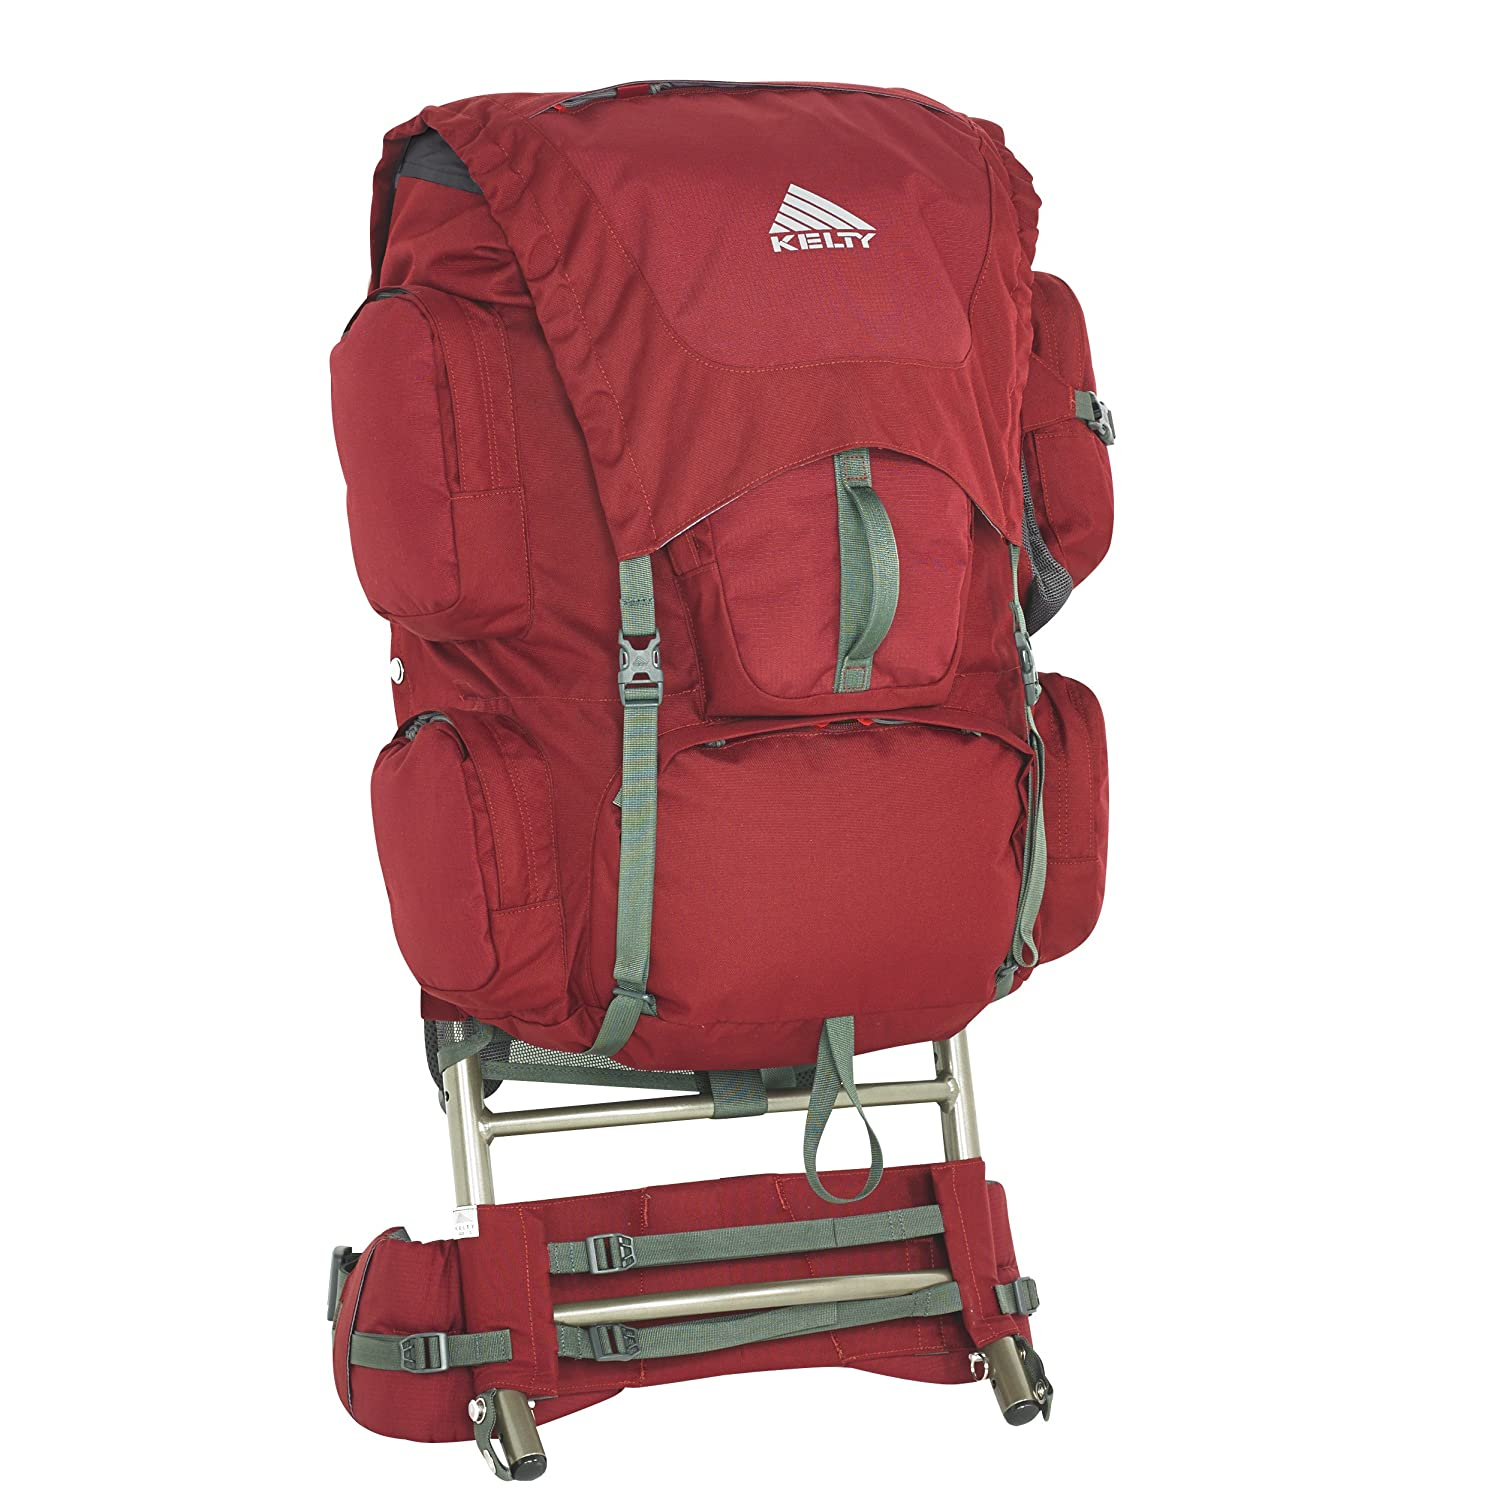 amazoncom kelty trekker 65 backpack garnet red sports outdoors - External Frame Hiking Backpack